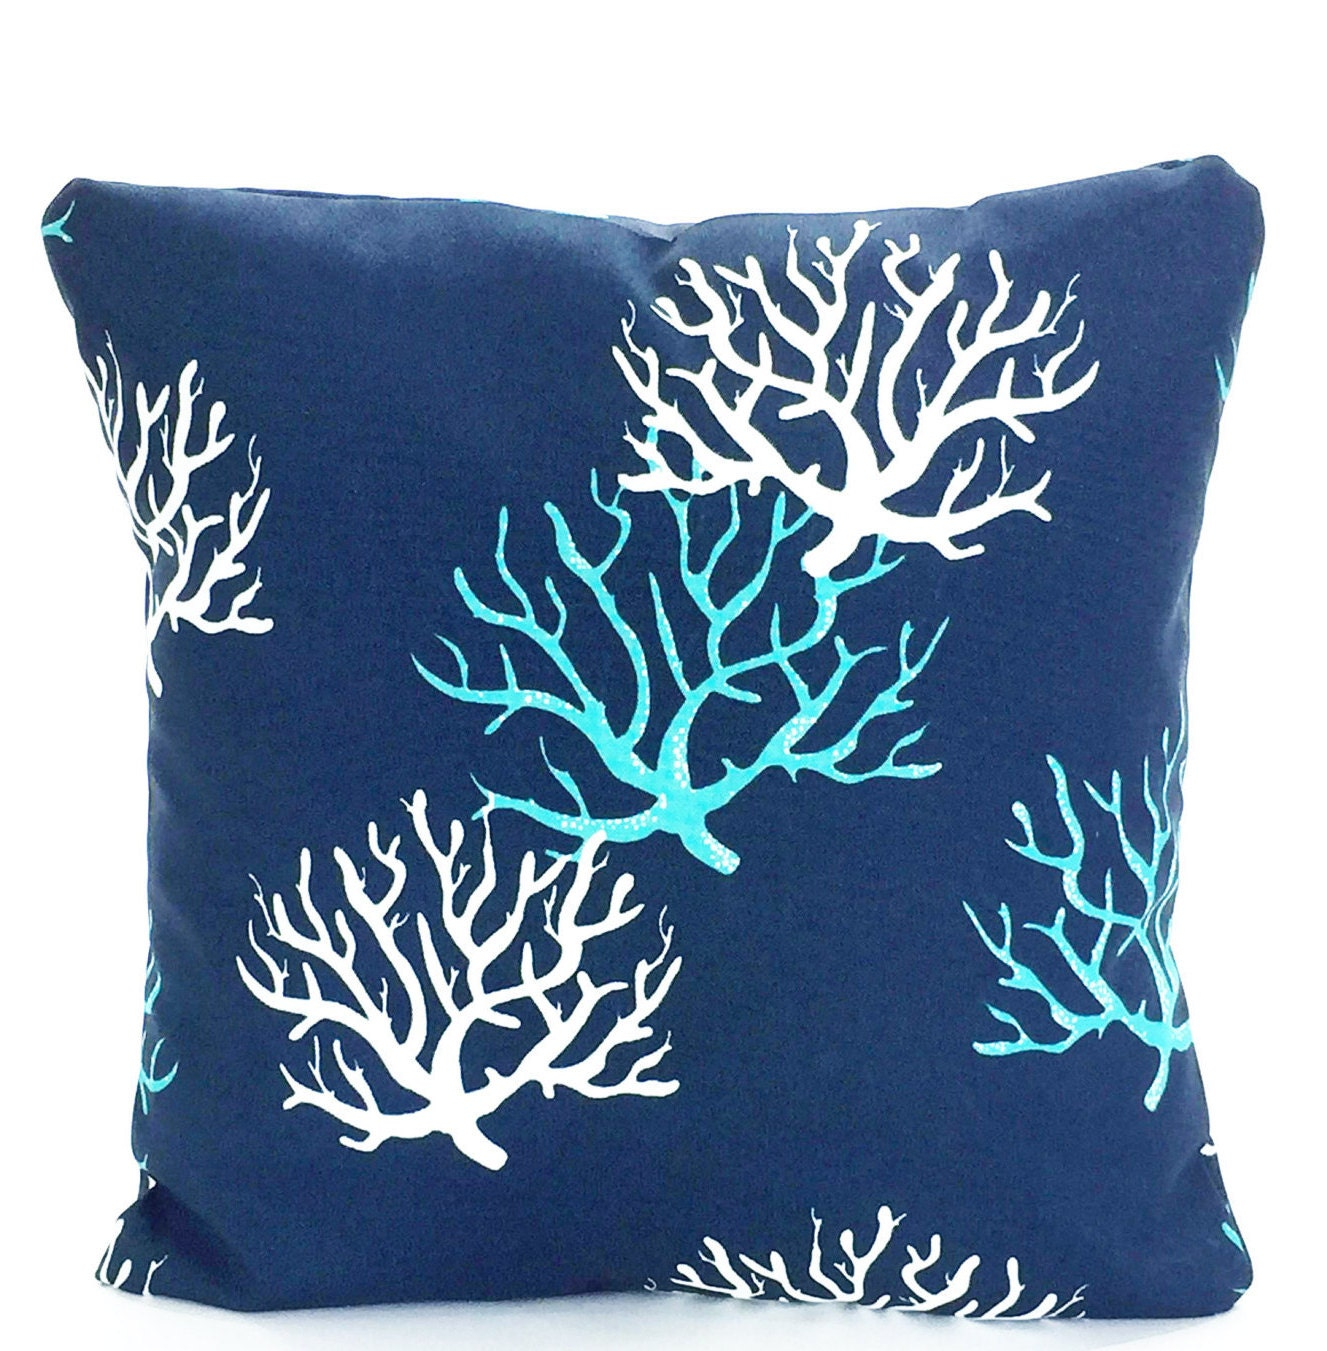 Nautical Coastal Throw Pillows : OUTDOOR Nautical Throw Pillow Covers Beach Decor Cushion